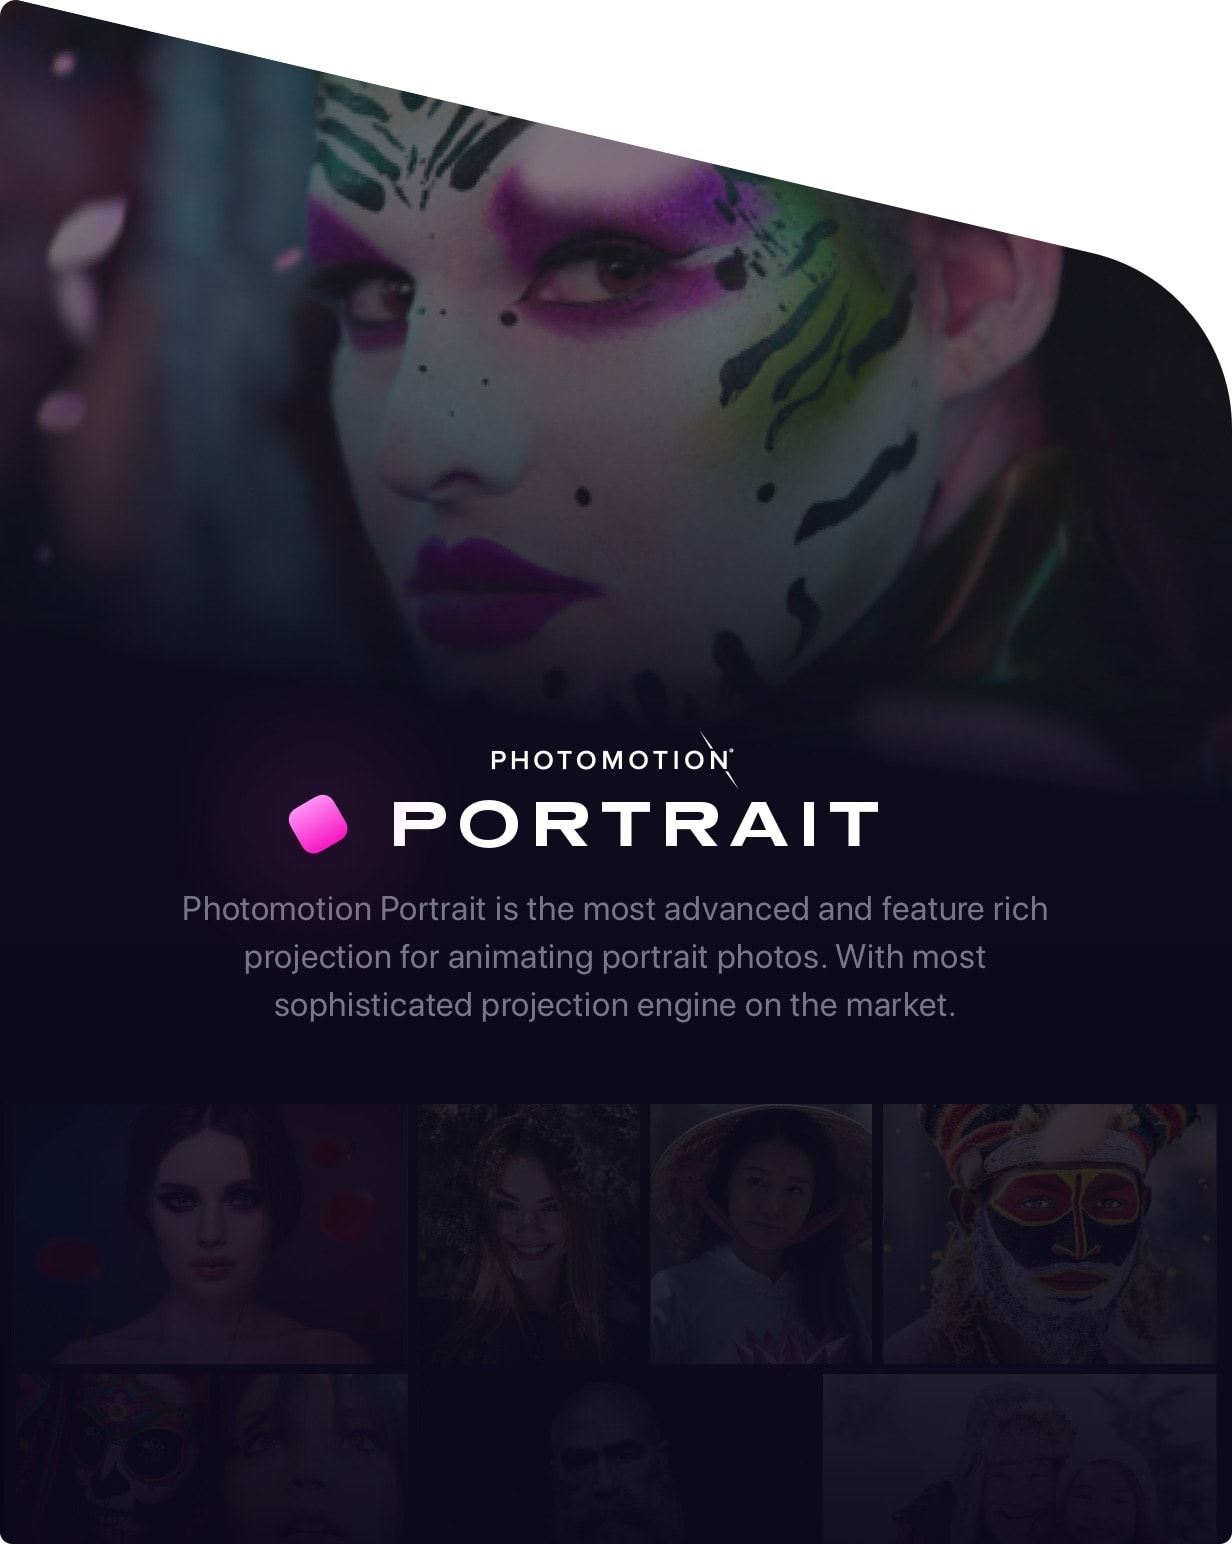 Portrait - Photomotion Portrait is the most advanced and feature rich projection for animating portrait photos. With most sophisticated projection engine on the market.